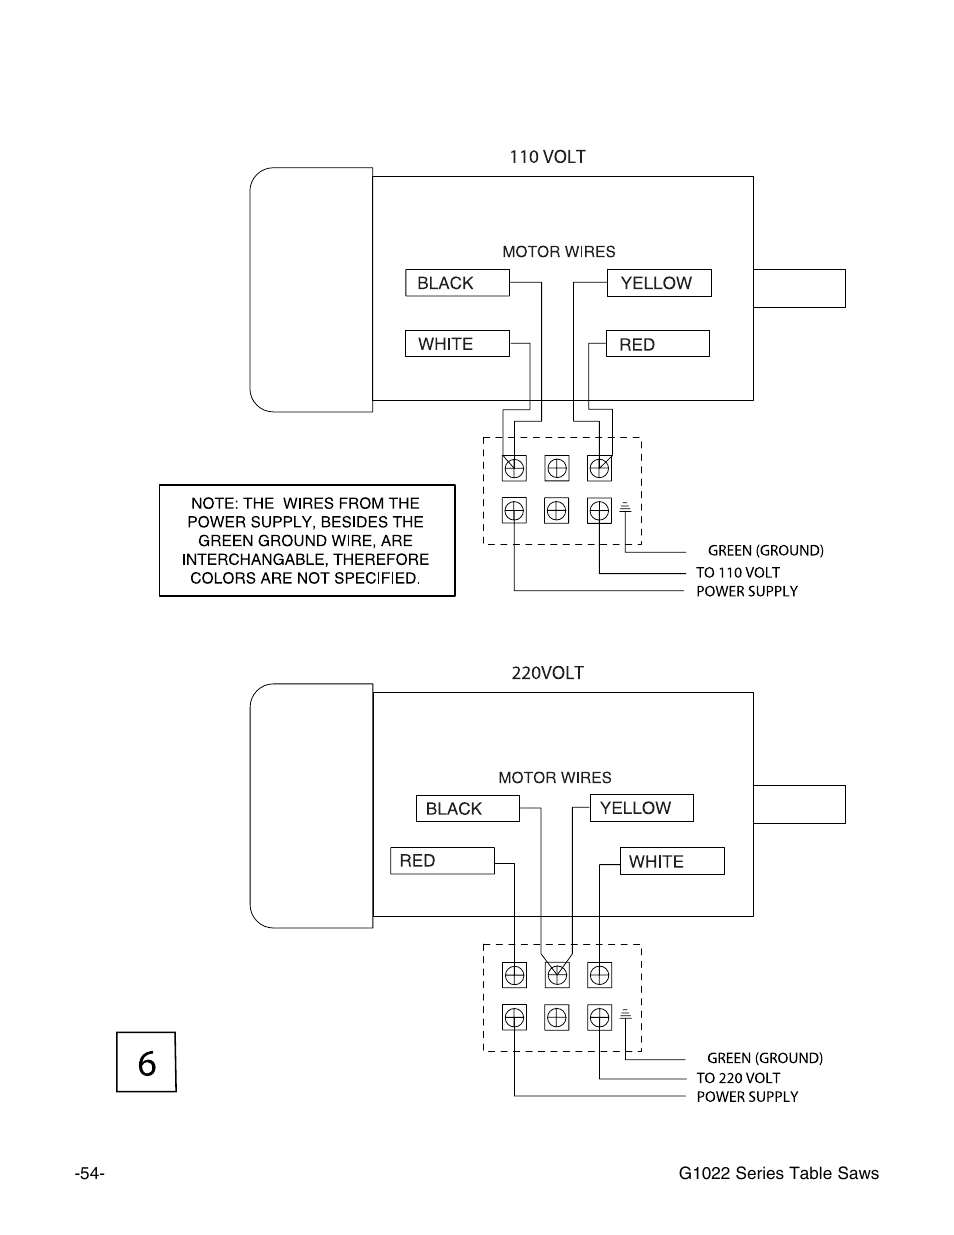 hight resolution of sm and z wiring diagram grizzly g1022prozx user manual page 56 84